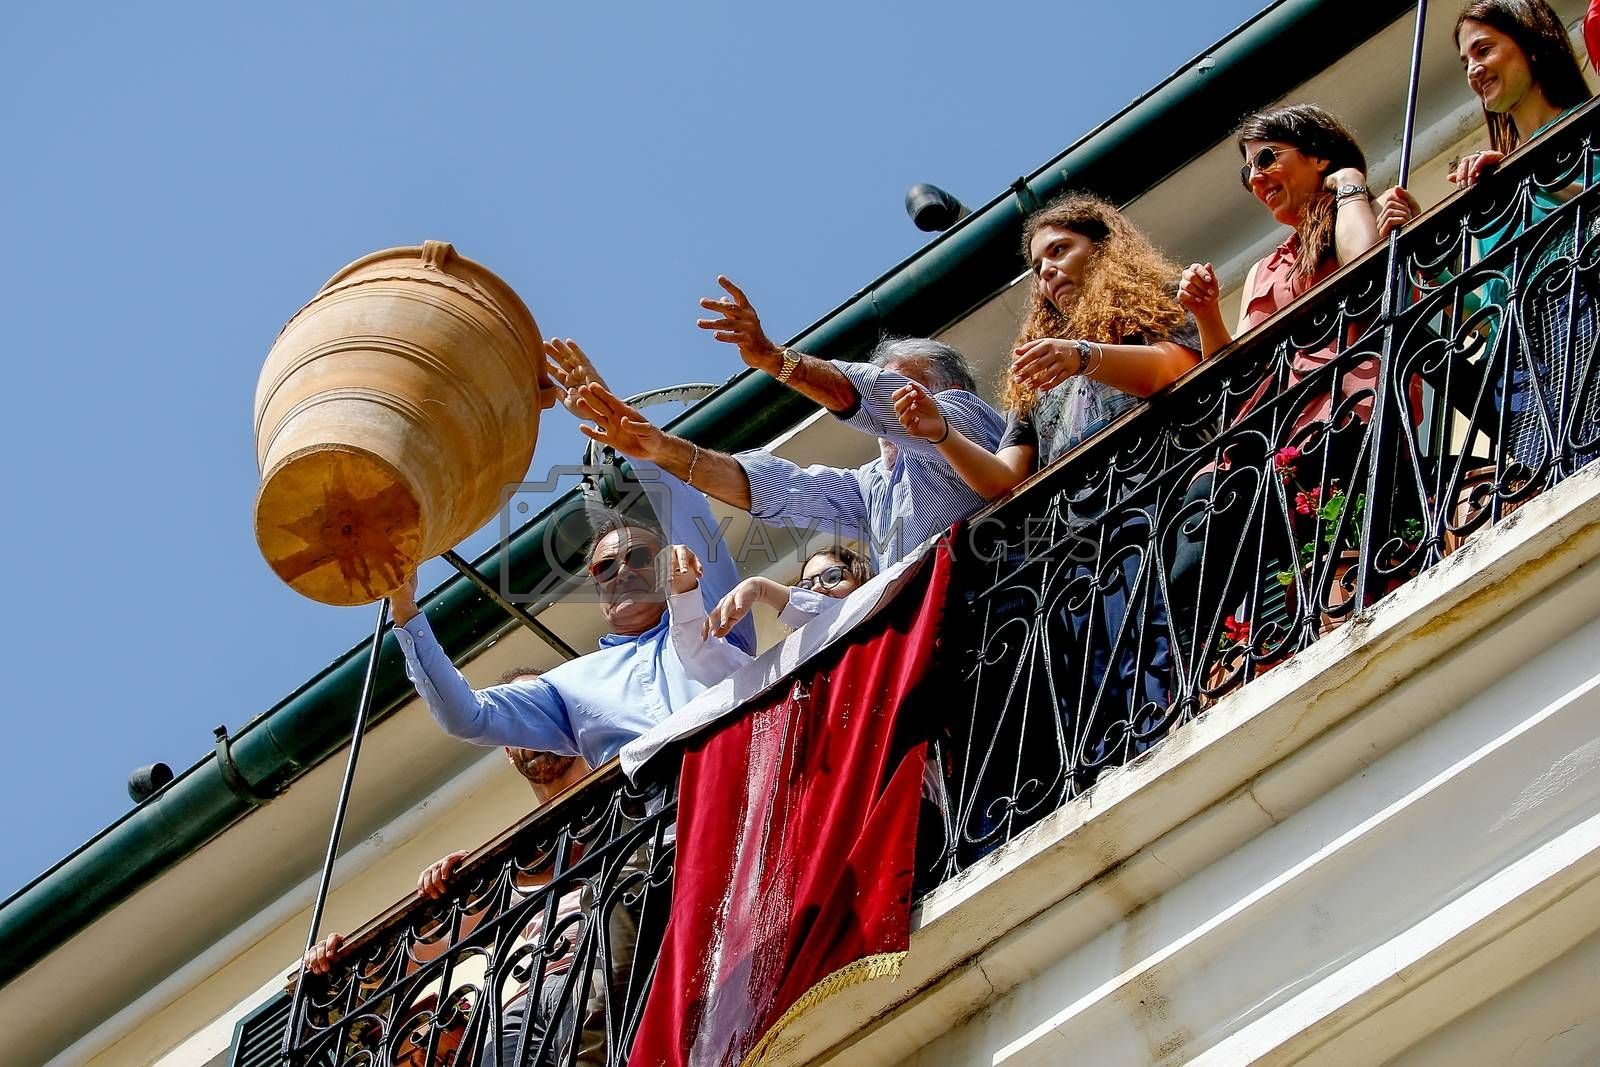 Corfu, Greece - April 27, 2019: Corfians throw clay pots from windows and balconies on Holy Saturday to celebrate the Resurrection of Christ